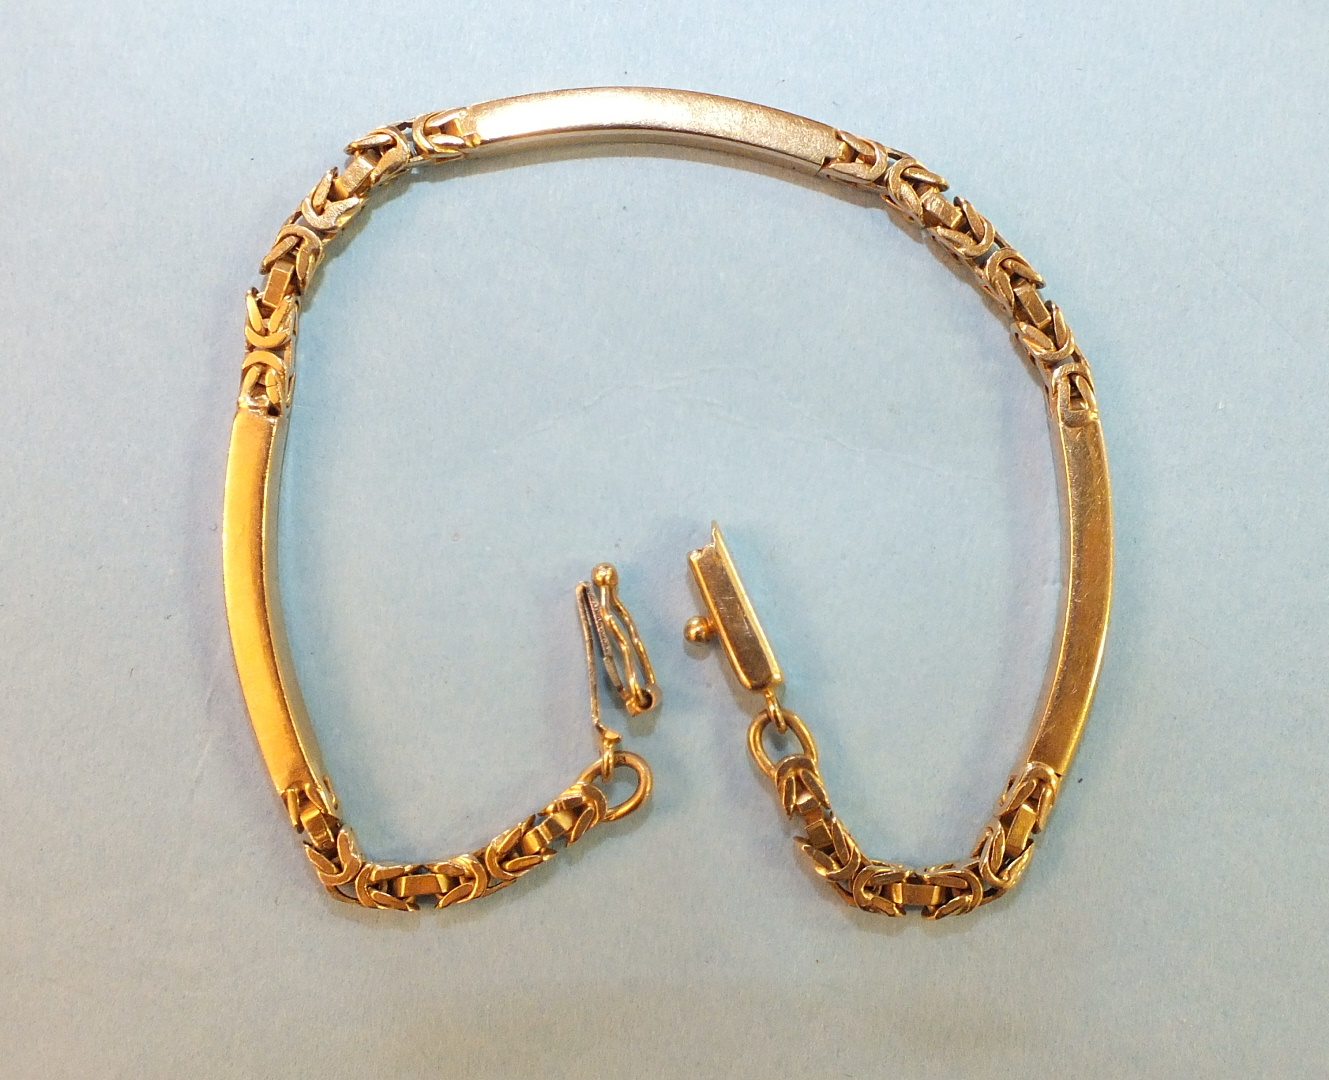 Lot 215 - A 9ct gold bracelet of curved batons and fancy links, 9g.